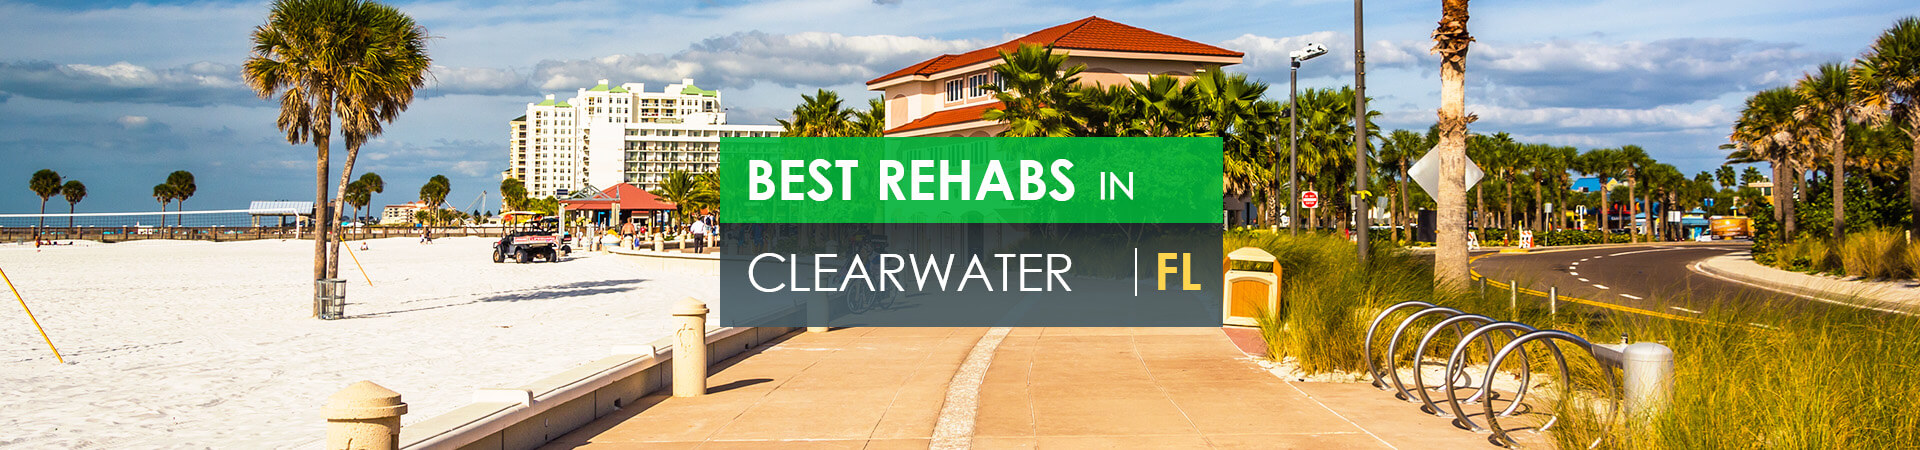 Best rehabs in Clearwater, FL